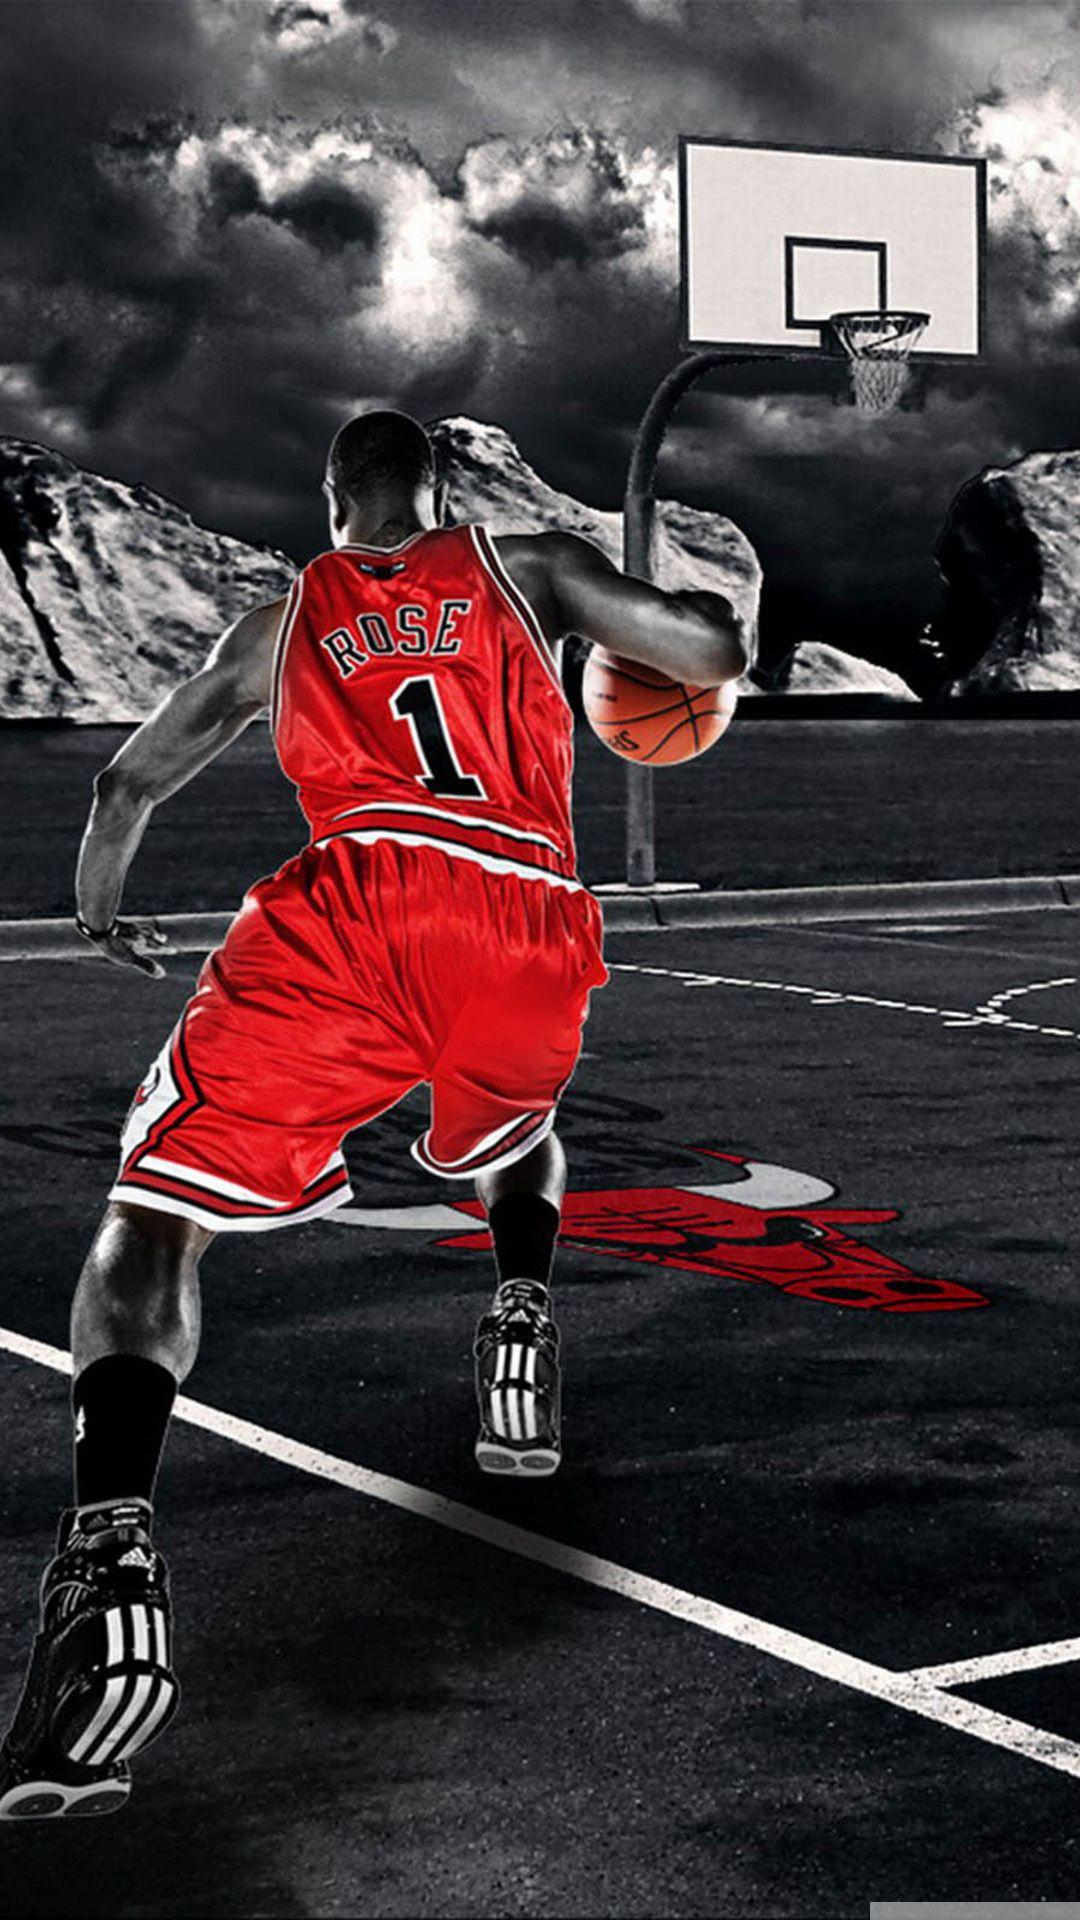 Nba Player Iphone Wallpapers Wallpaper Cave